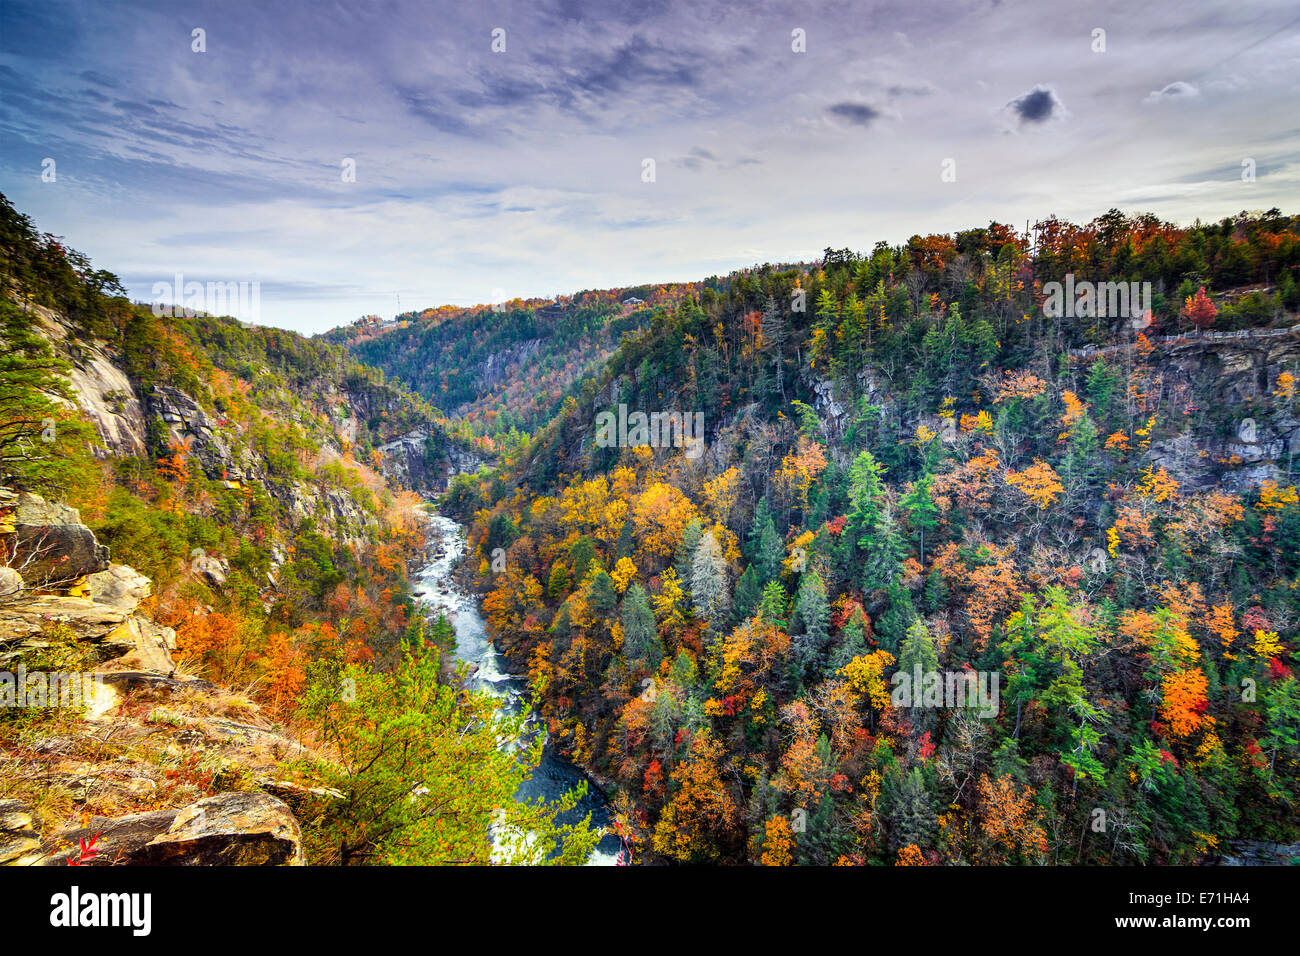 Tallulah Gorge in Georgia, USA during fall season. - Stock Image